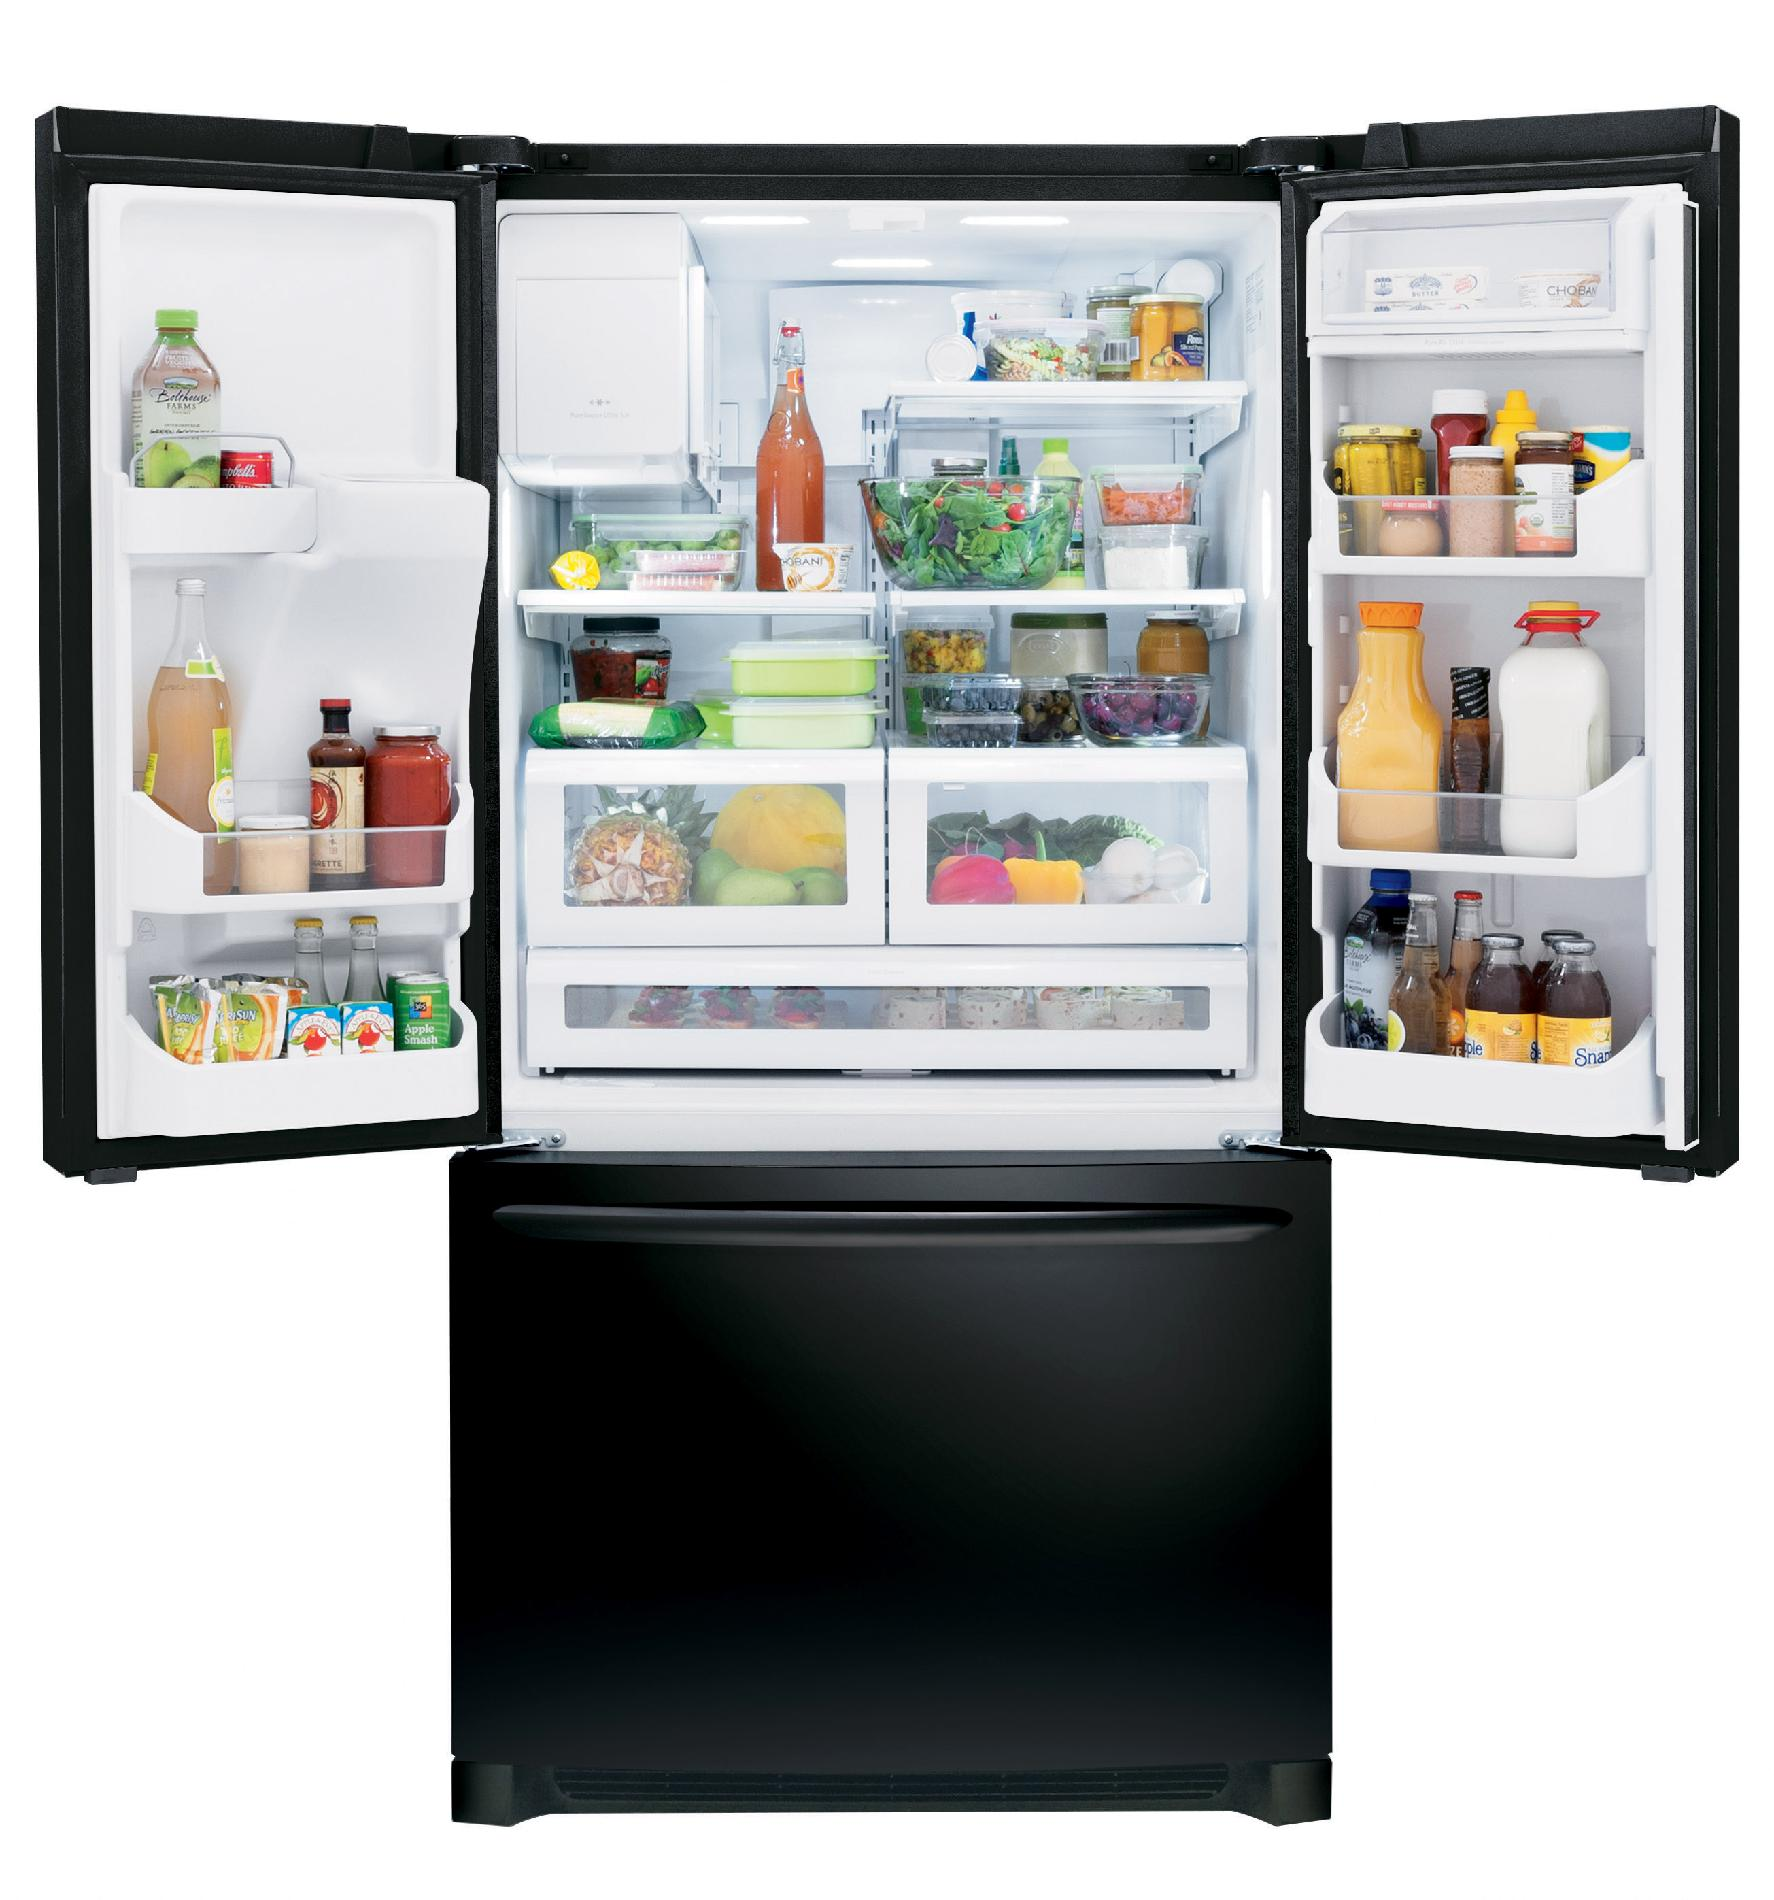 Frigidaire Gallery FGHB2866PE Gallery 27.9 cu. ft. French Door Refrigerator - Ebony Black